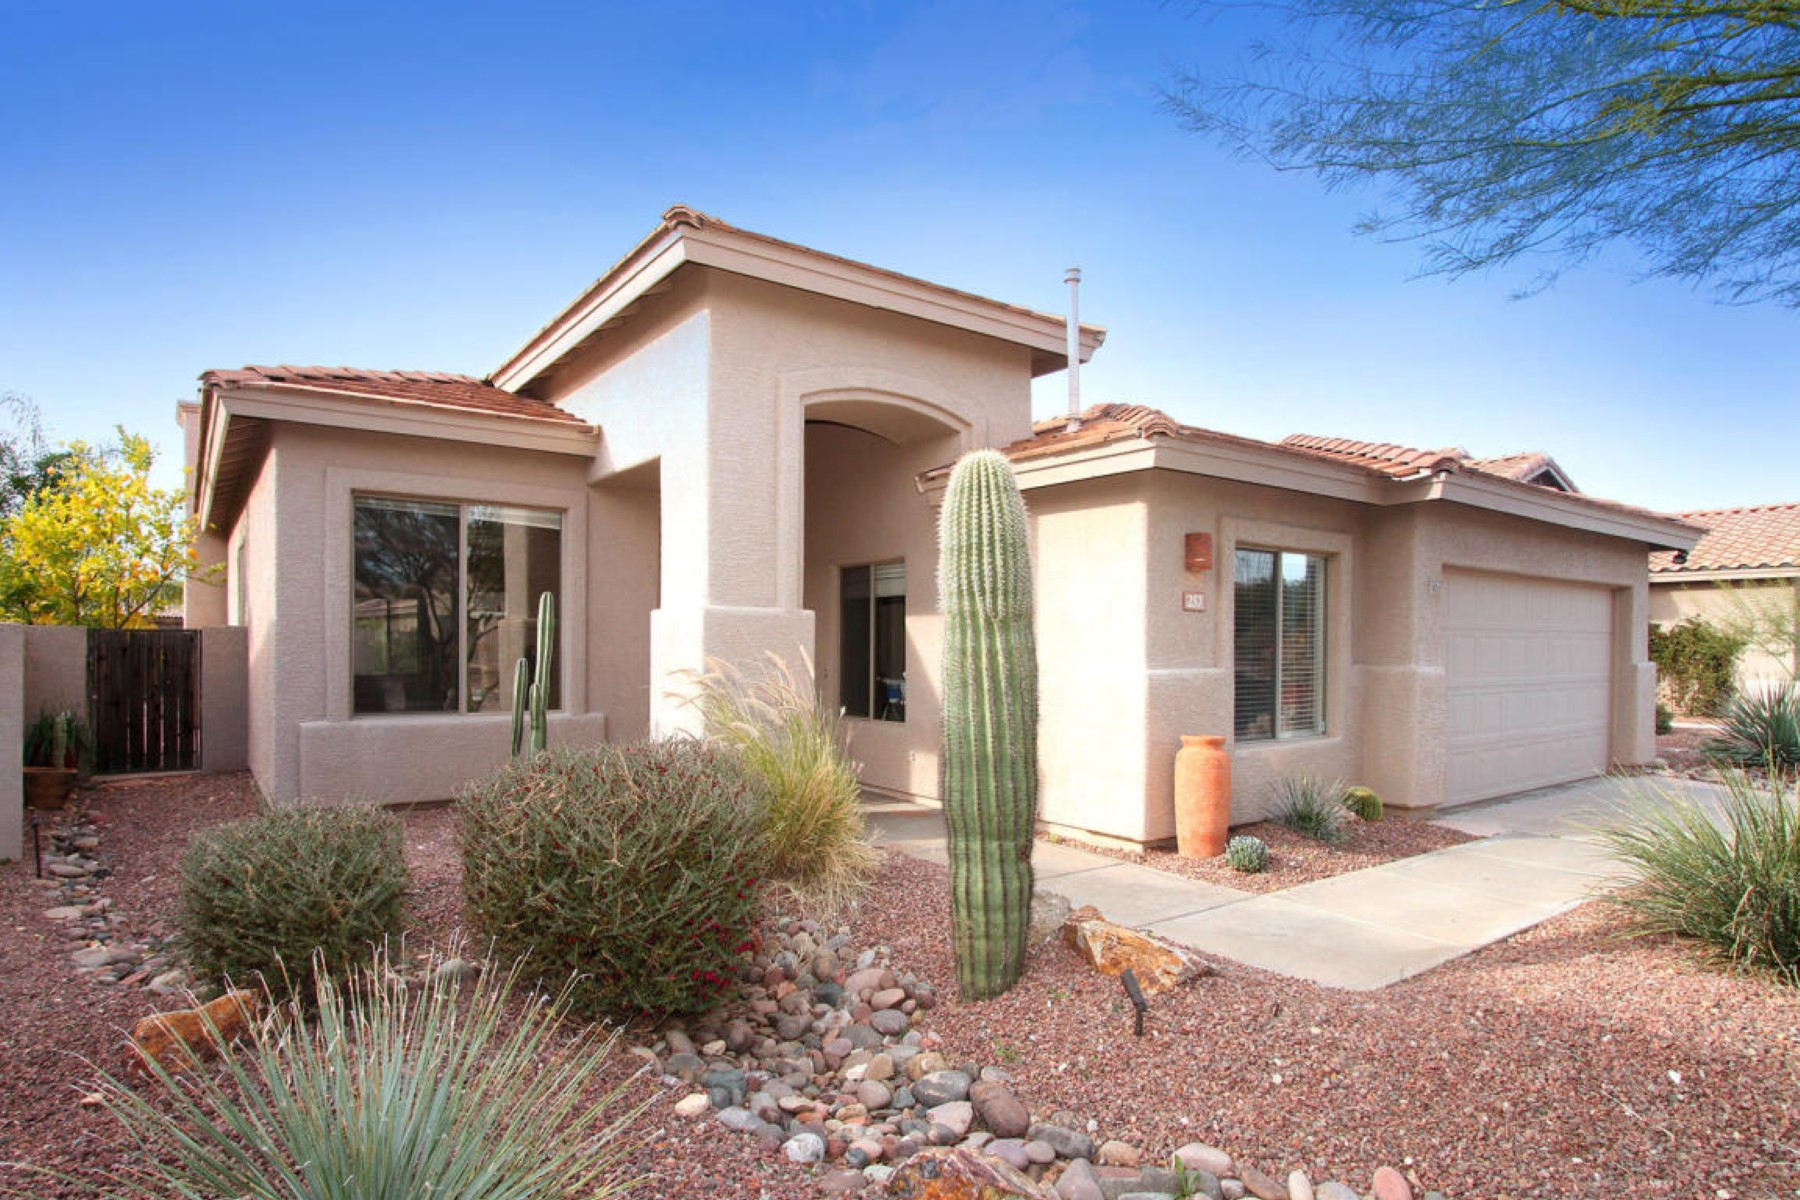 Single Family Home for Sale at Fabulous updated home located in Oro Valley's gated Monterey at Vistoso 257 W Tabascoe Place Oro Valley, Arizona 85755 United States